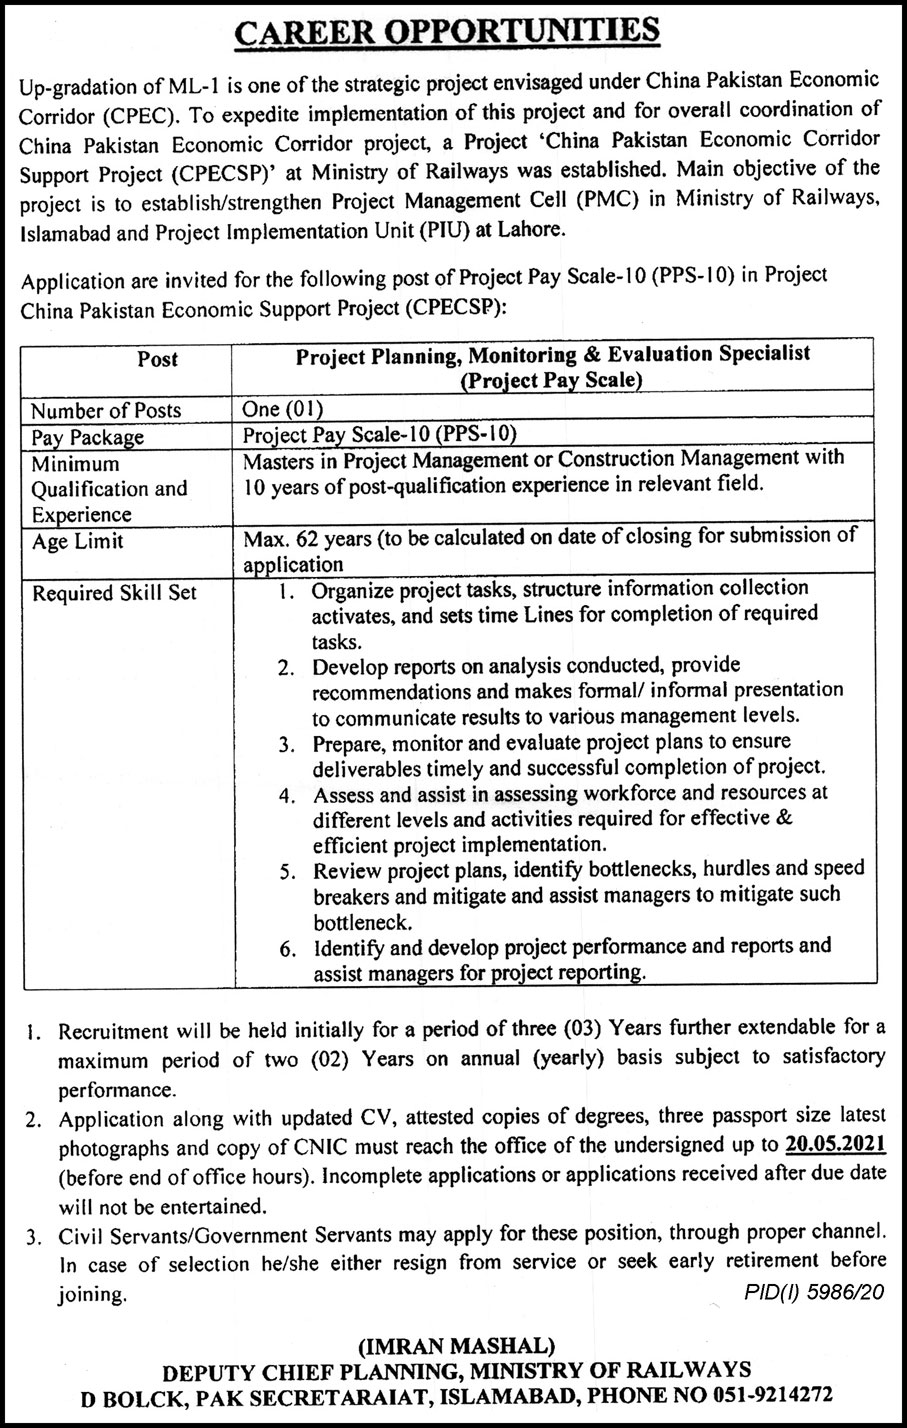 This page is about Ministry of Railways Jobs May 2021 Latest Advertisment. Ministry of Railways invites applications for the posts announced on a contact / permanent basis from suitable candidates for the following positions such as Project Planning Monitoring & Evaluation Specialist. These vacancies are published in The Nation Newspaper, one of the best News paper of Pakistan. This advertisement has pulibhsed on 04 May 2021 and Last Date to apply is 20 May 2021.